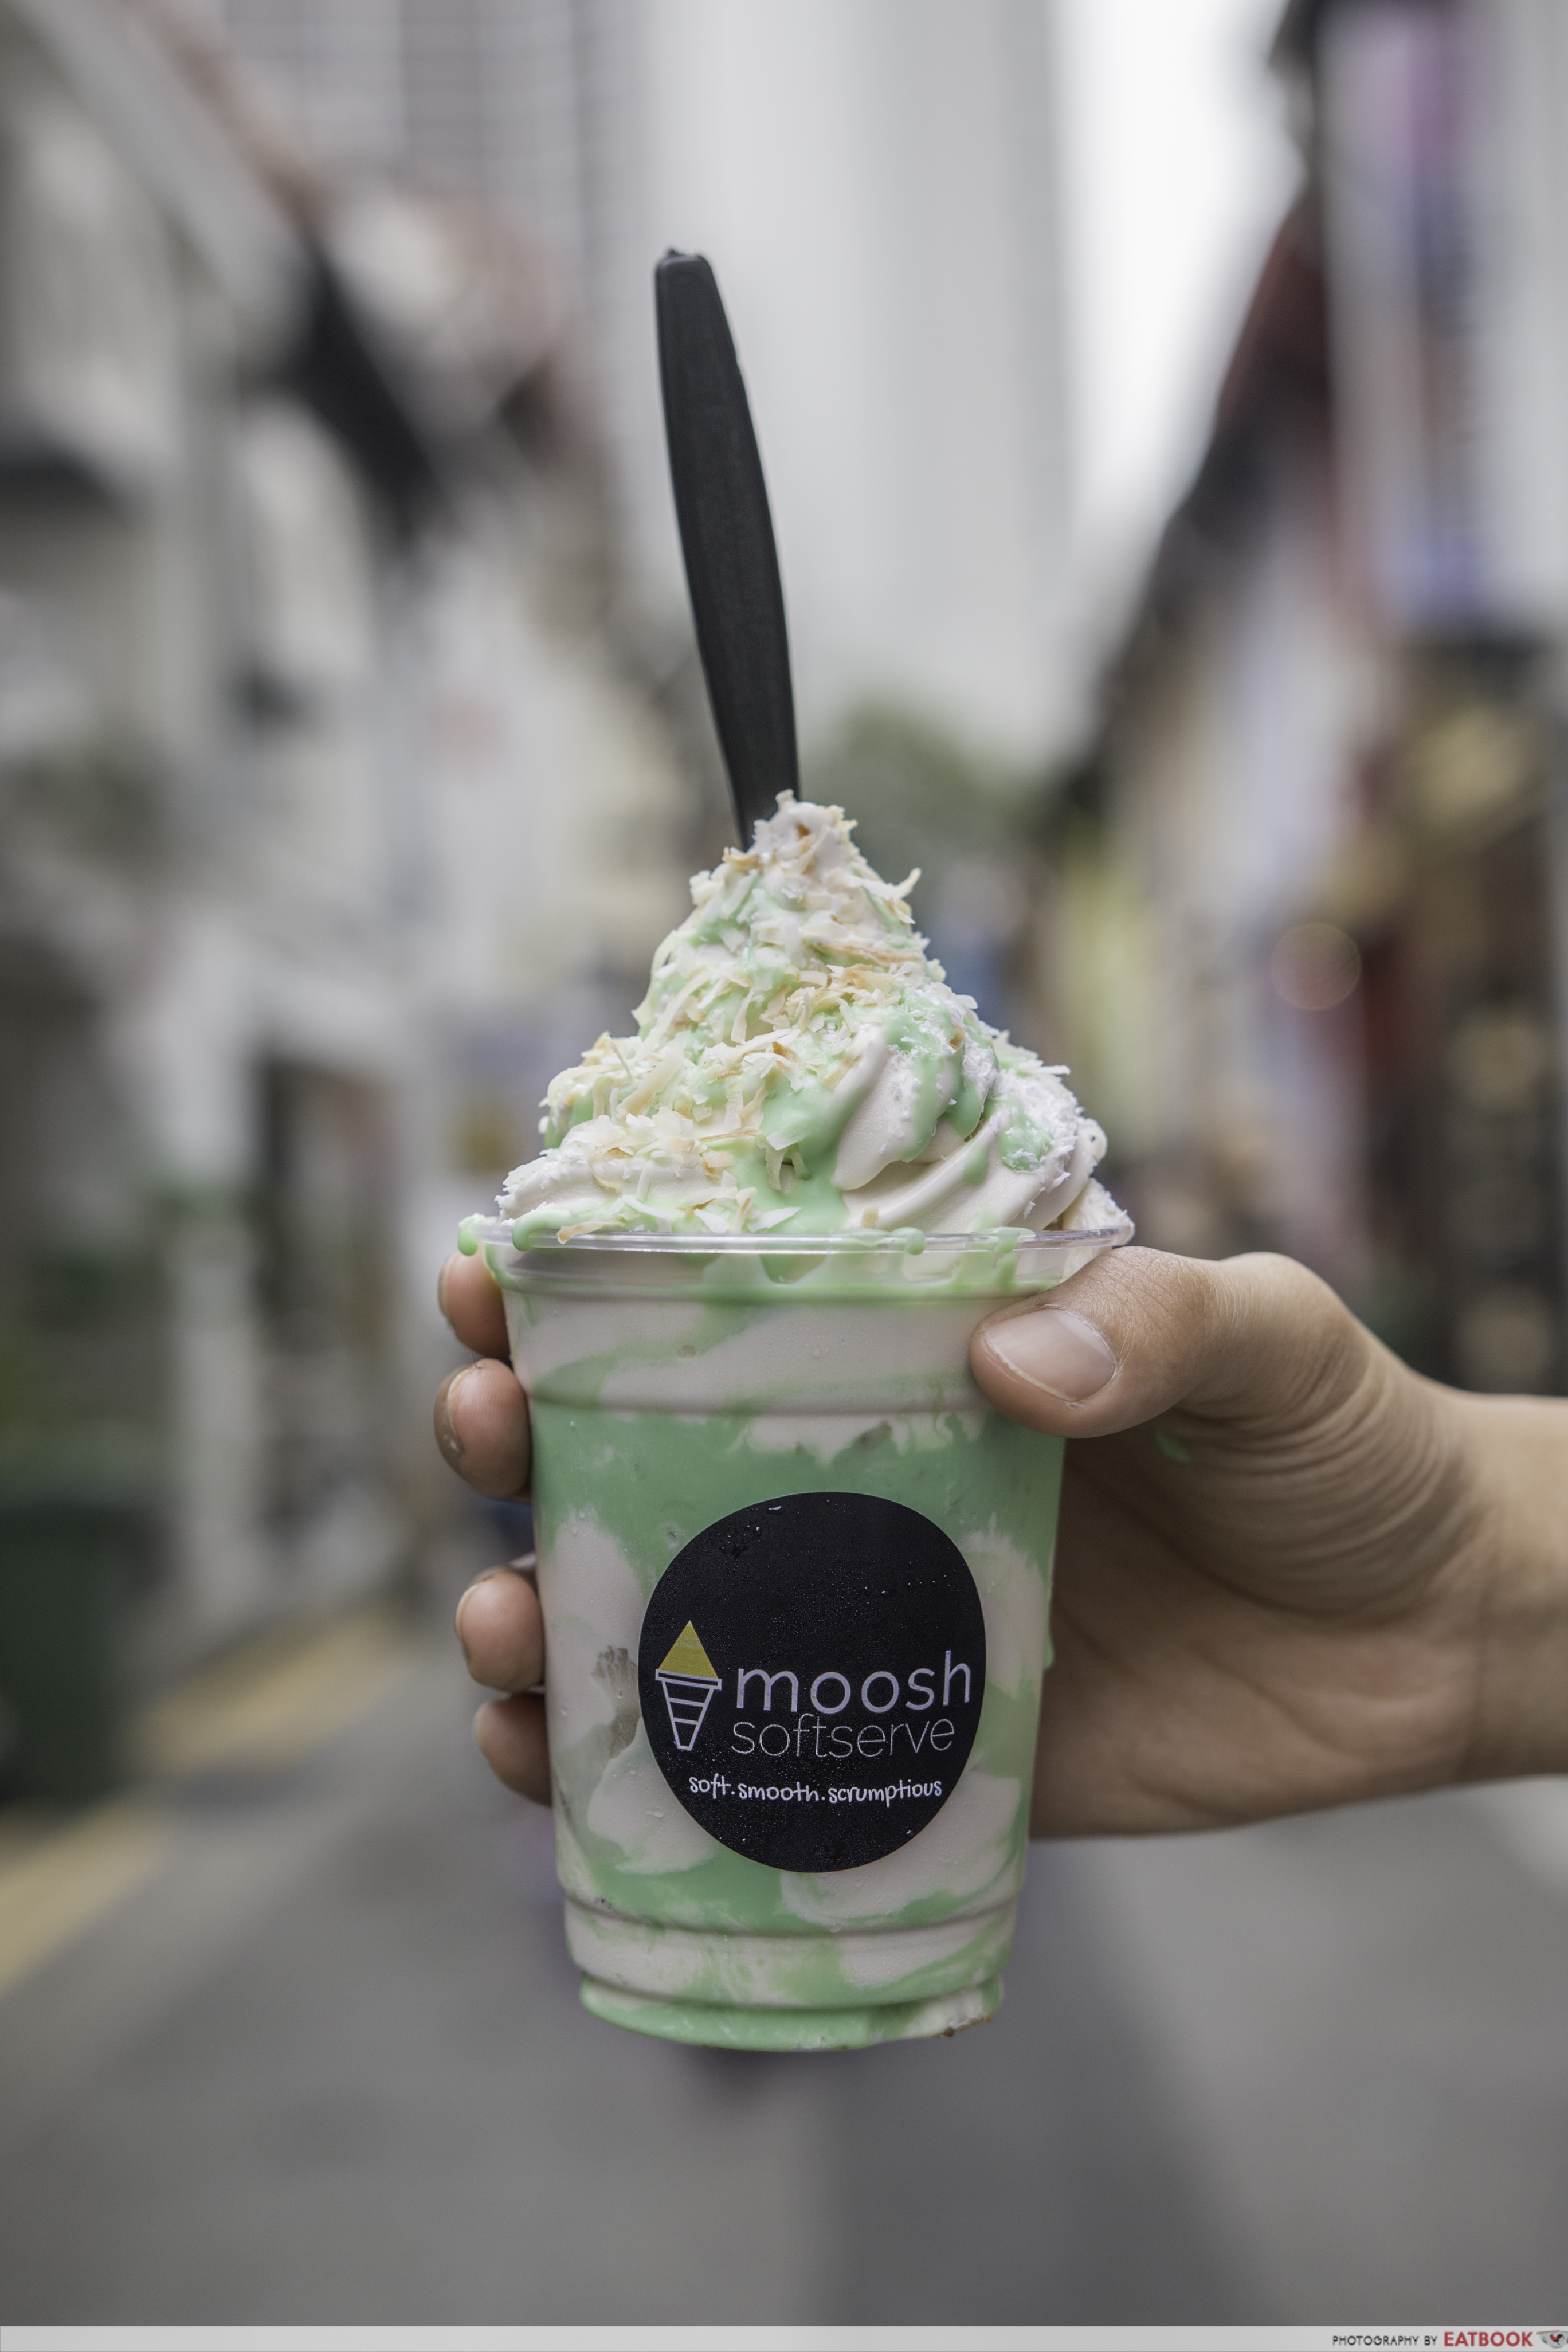 Moosh - Ondeh-Ondeh Soft Serve